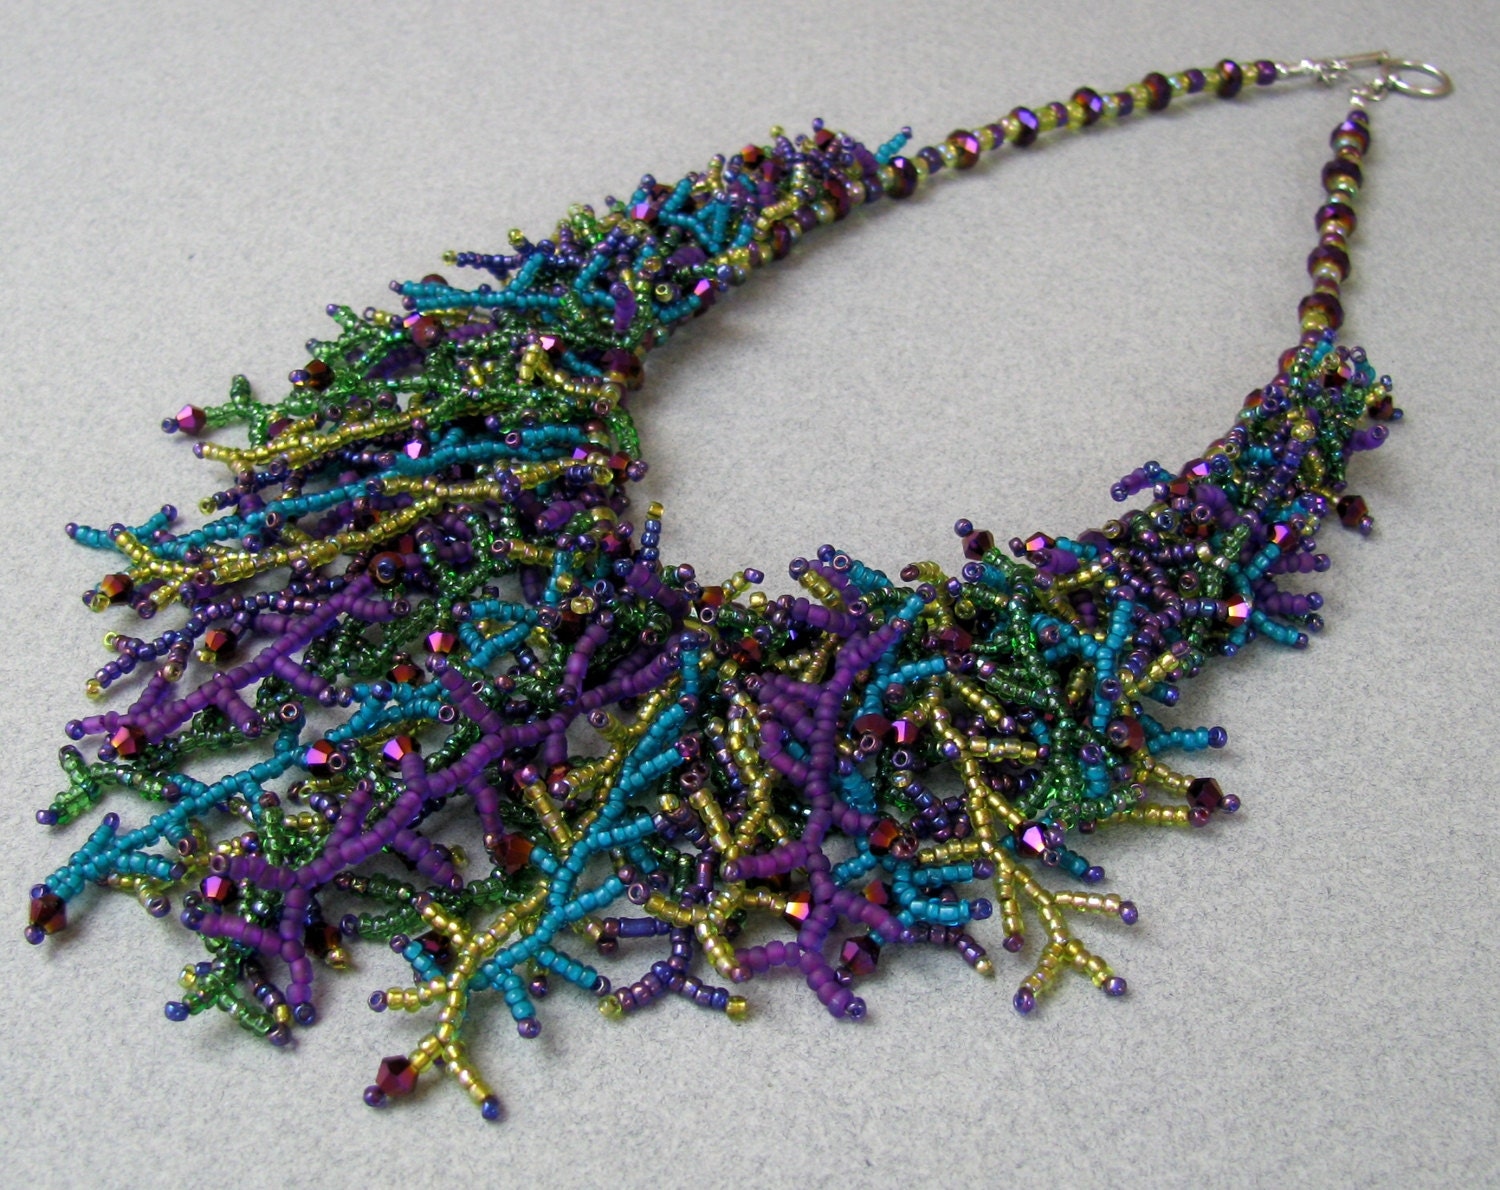 items similar to peacock seed bead and fringe necklace on etsy